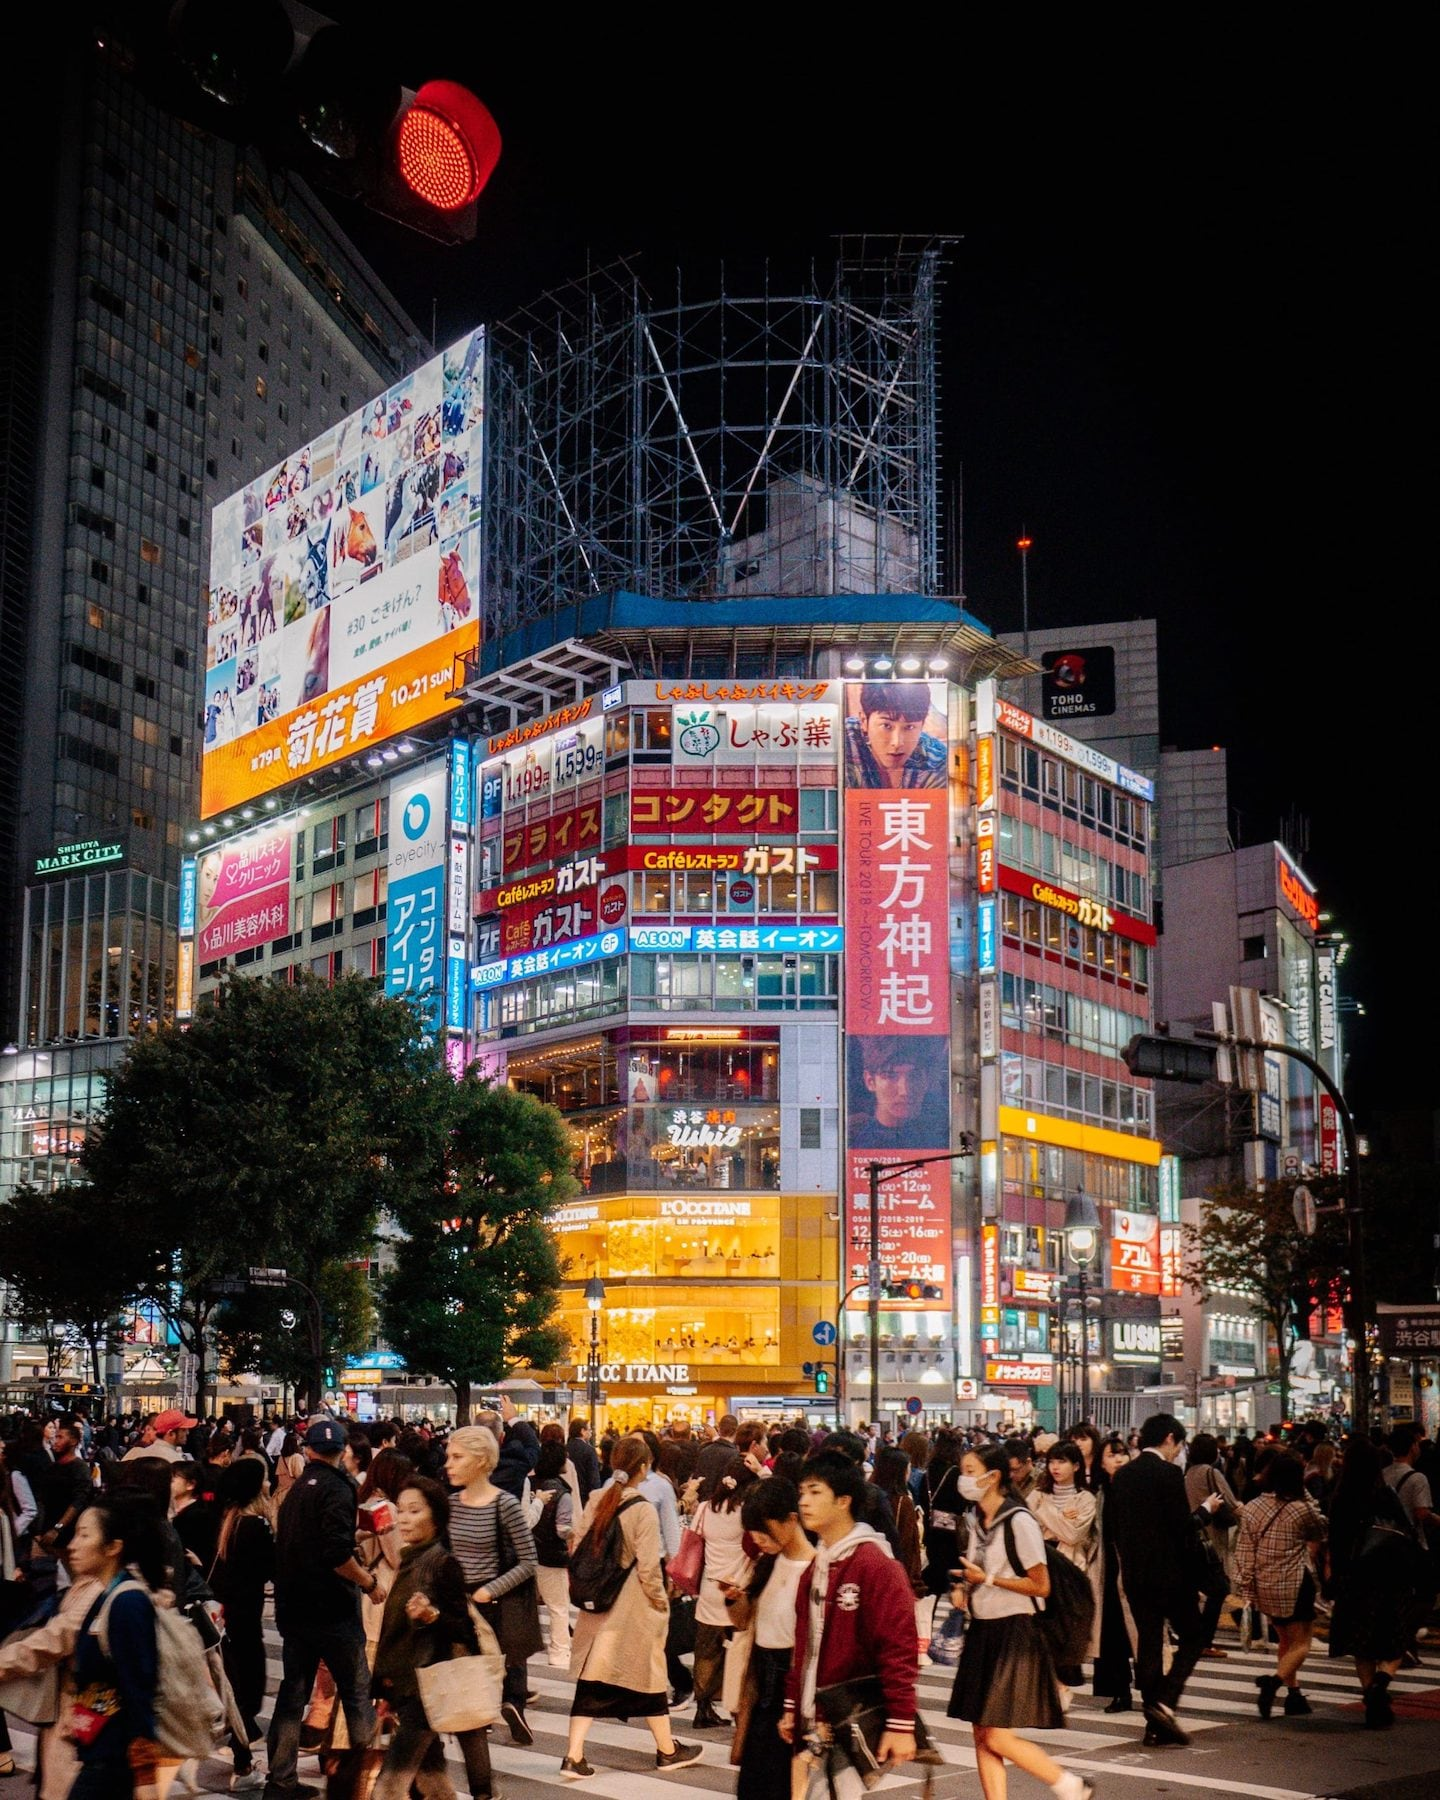 tokyo_nuit_anthony_marques_4